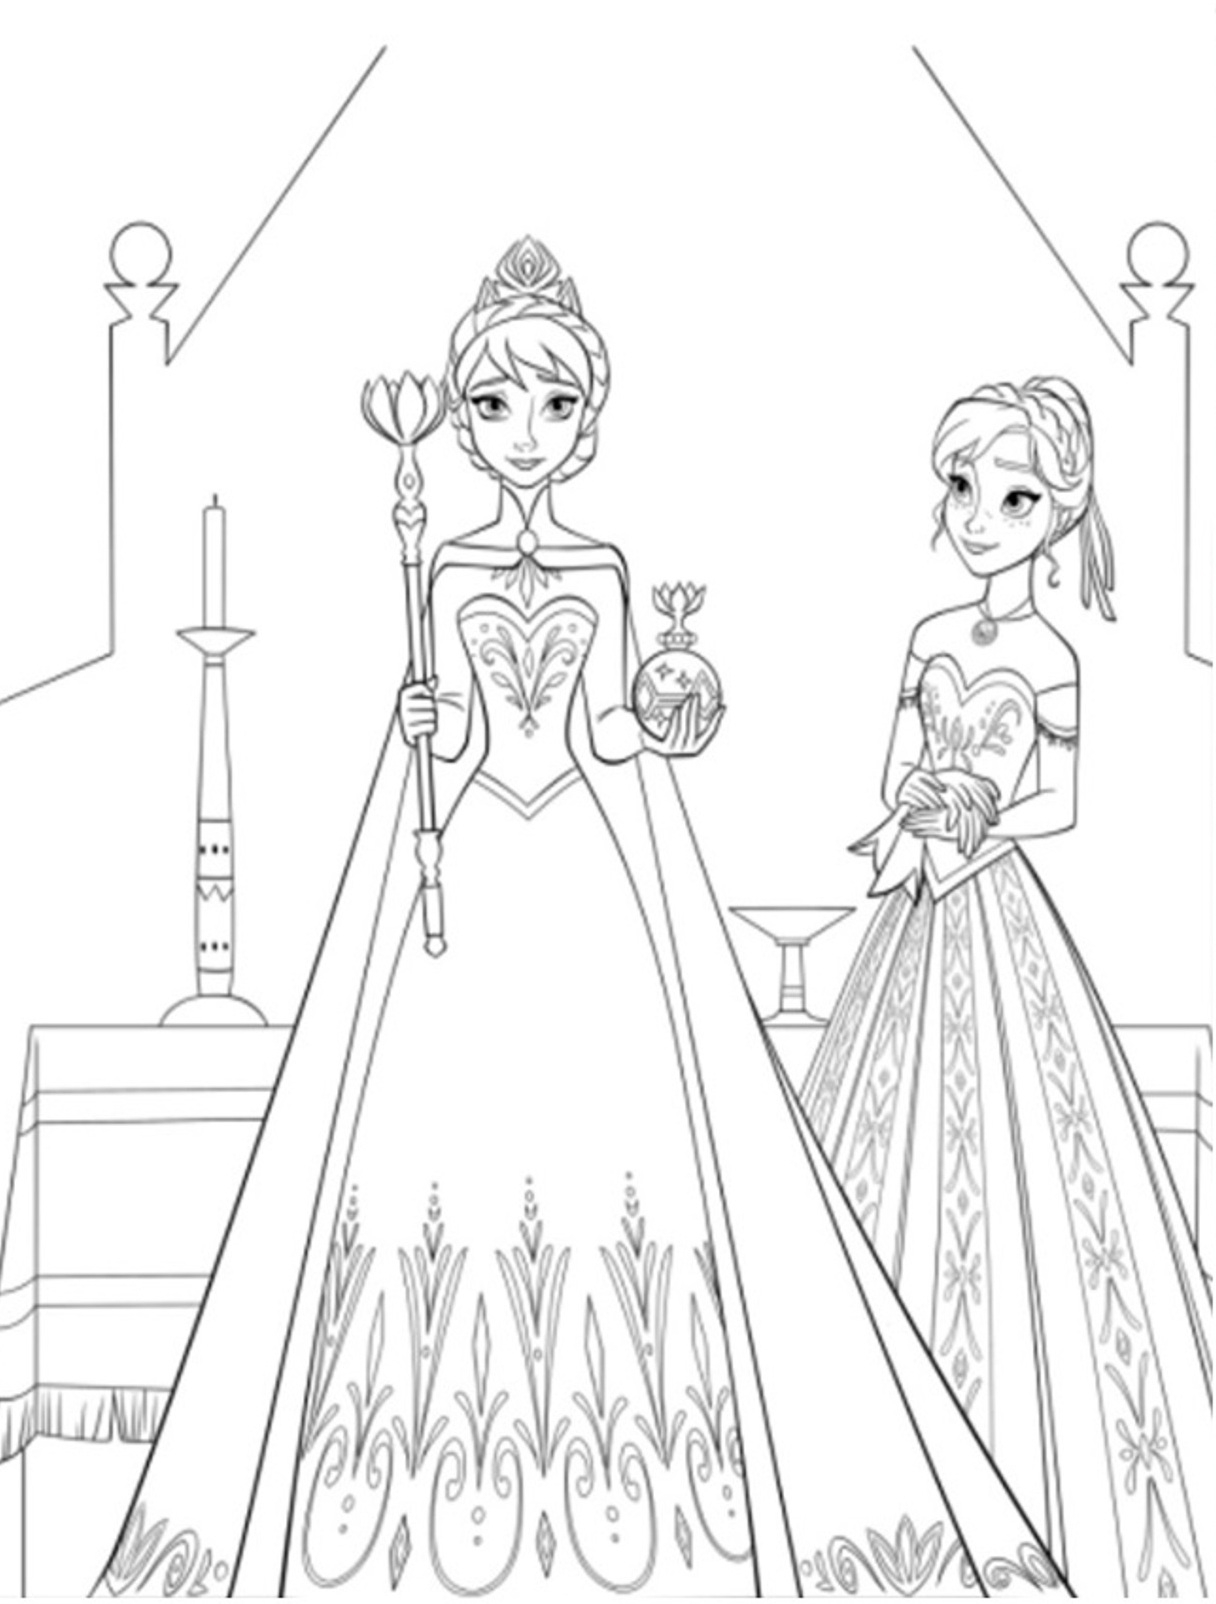 Disney Princess Coloring Pages Frozen Anna Free Coloring Sheets ...